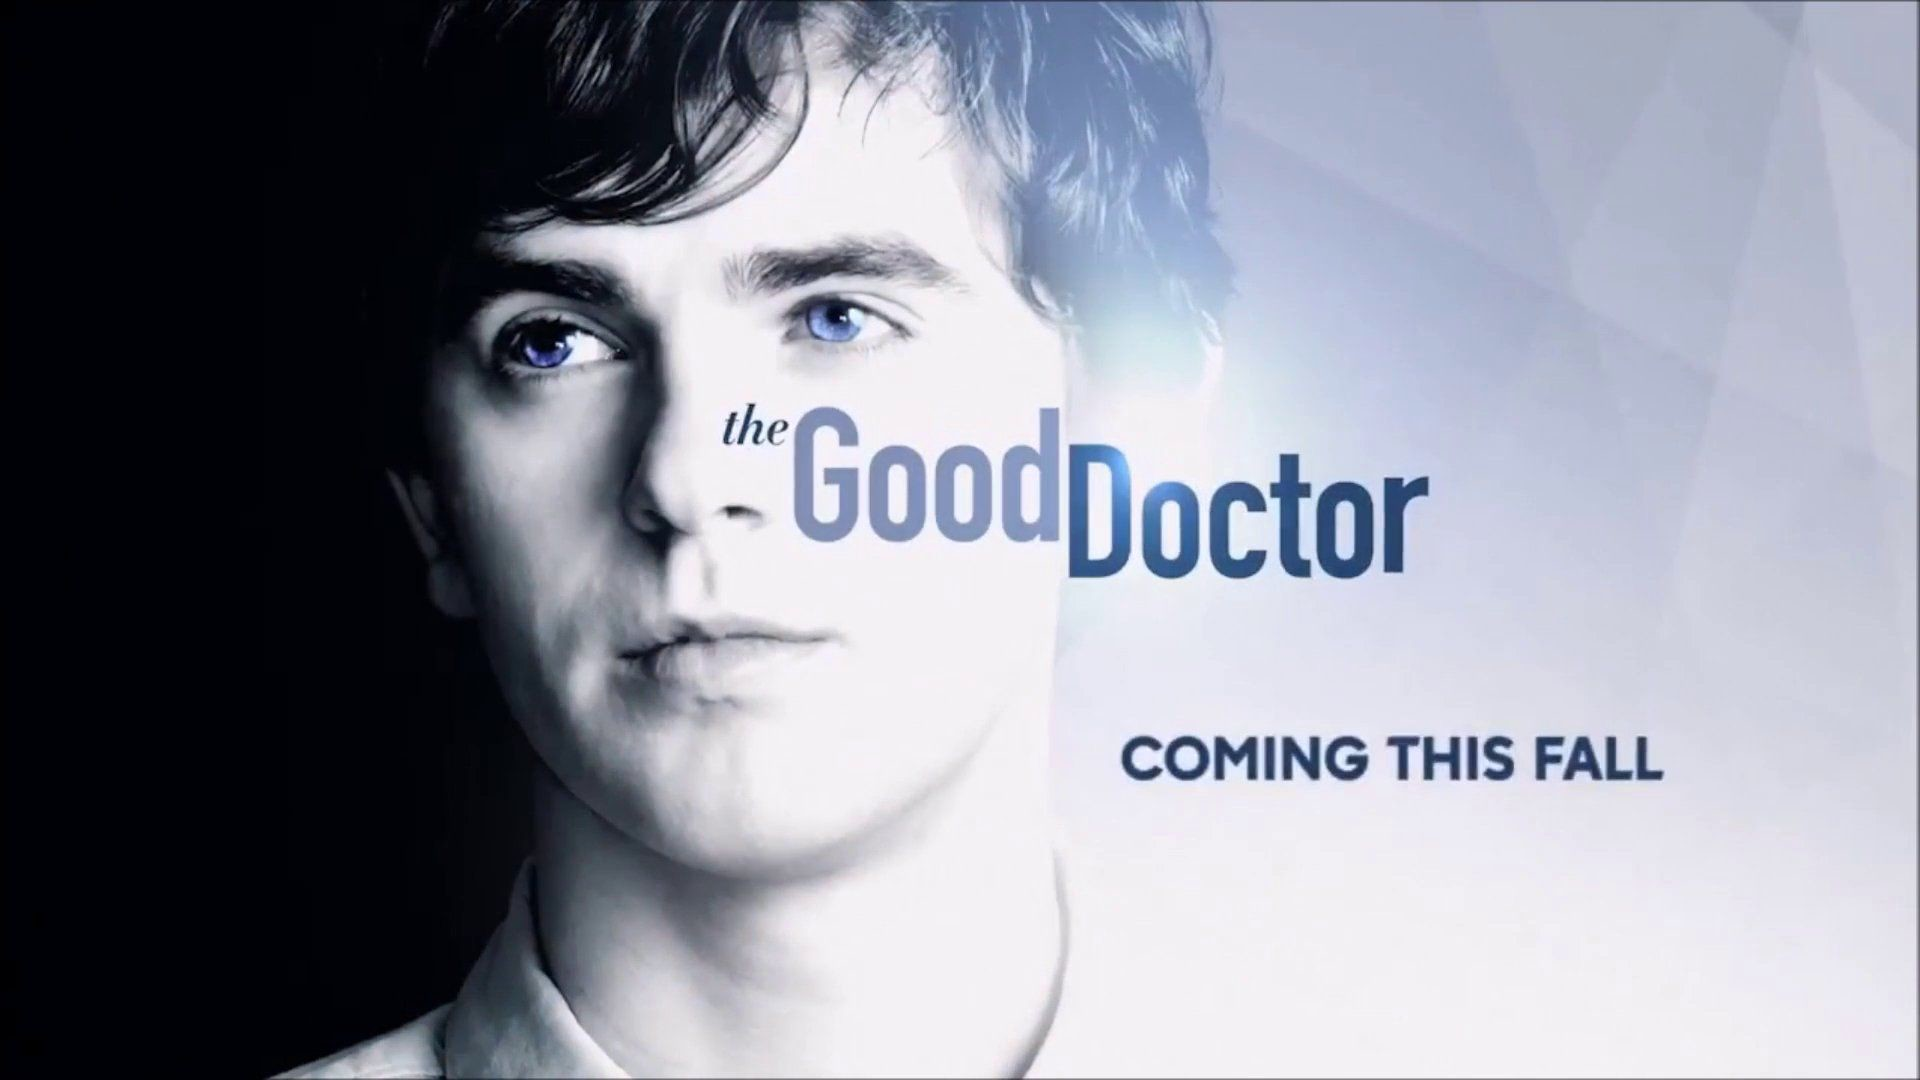 1920x1080 The Good Doctor Wallpaper 10 - 1920 X 1080